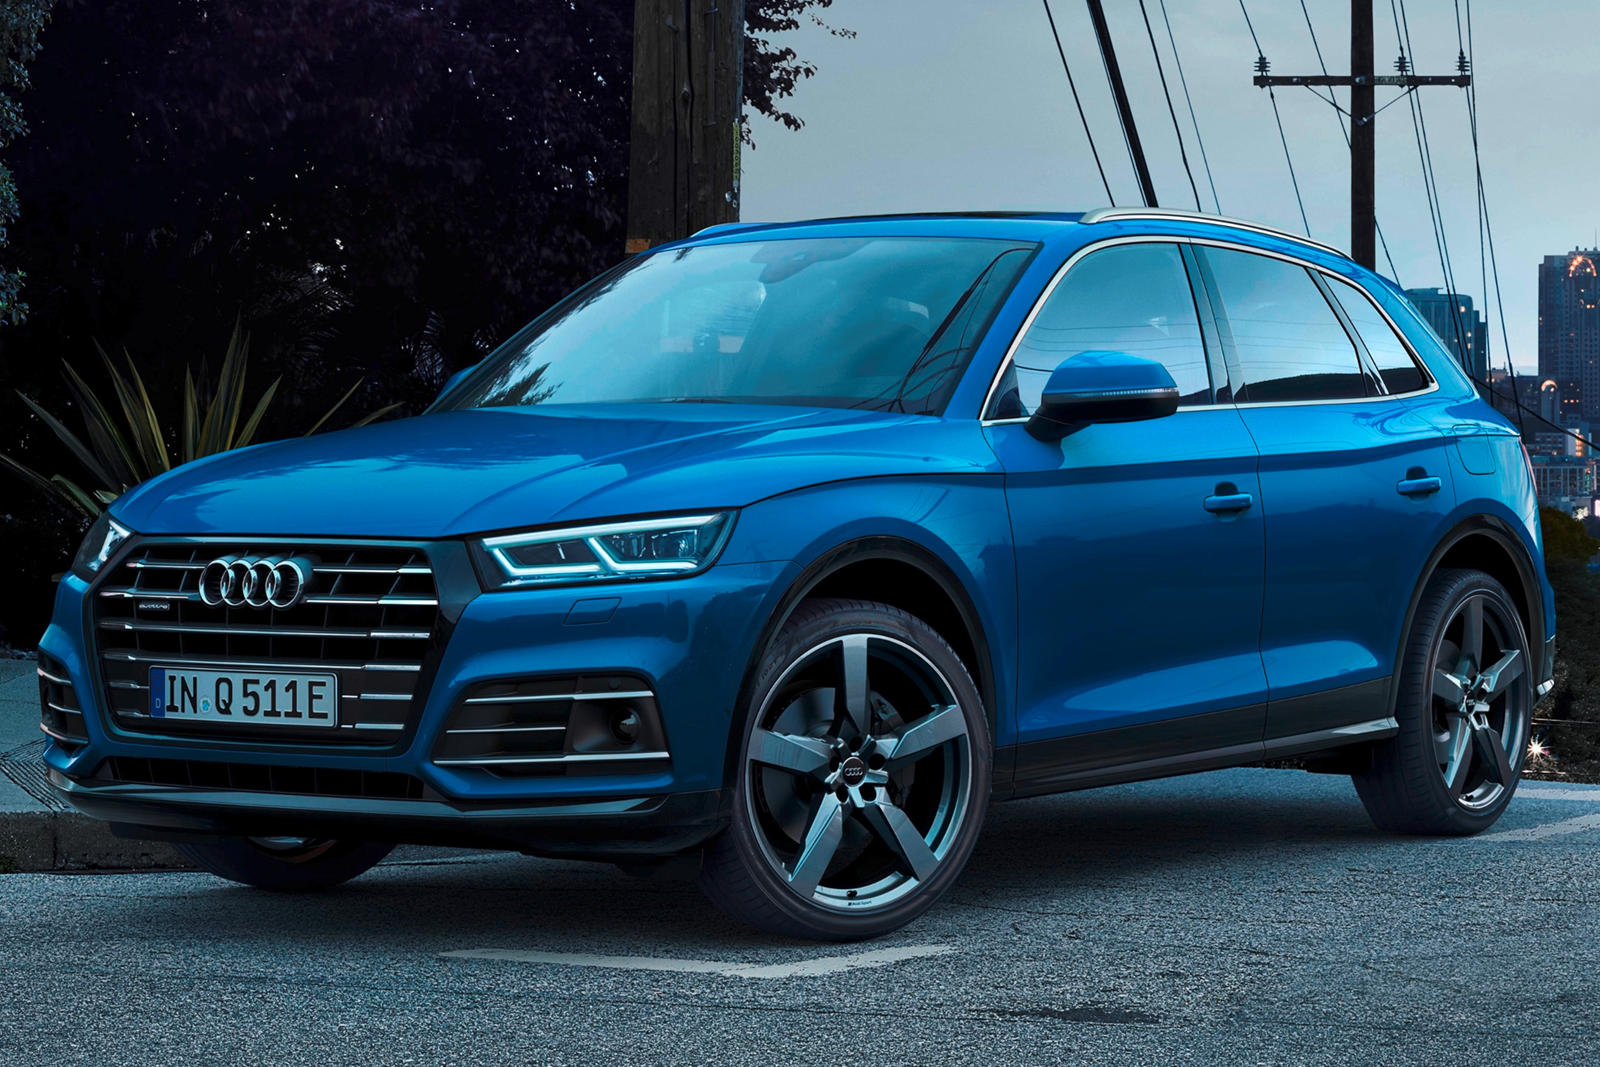 New Audi Q5 Is More Powerful Than The SQ5 | CarBuzz